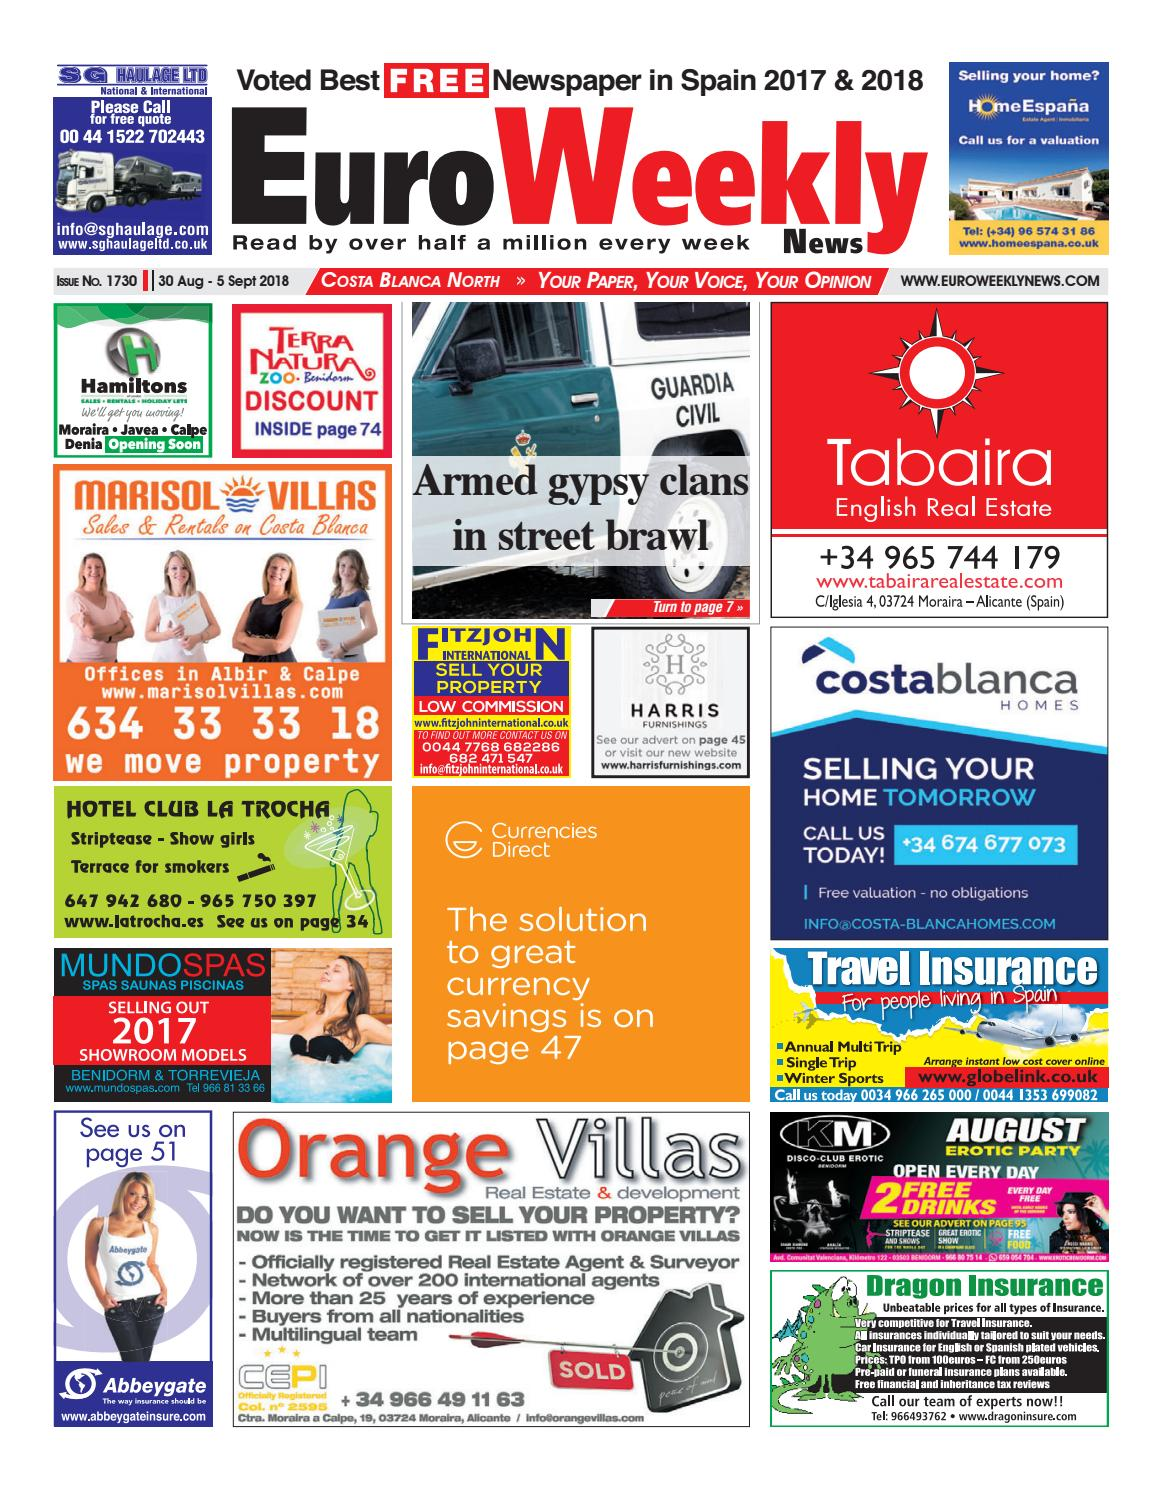 20b9263ba7c9 Euro Weekly News - Costa Blanca North 30 August - 5 September 2018 Issue  1730